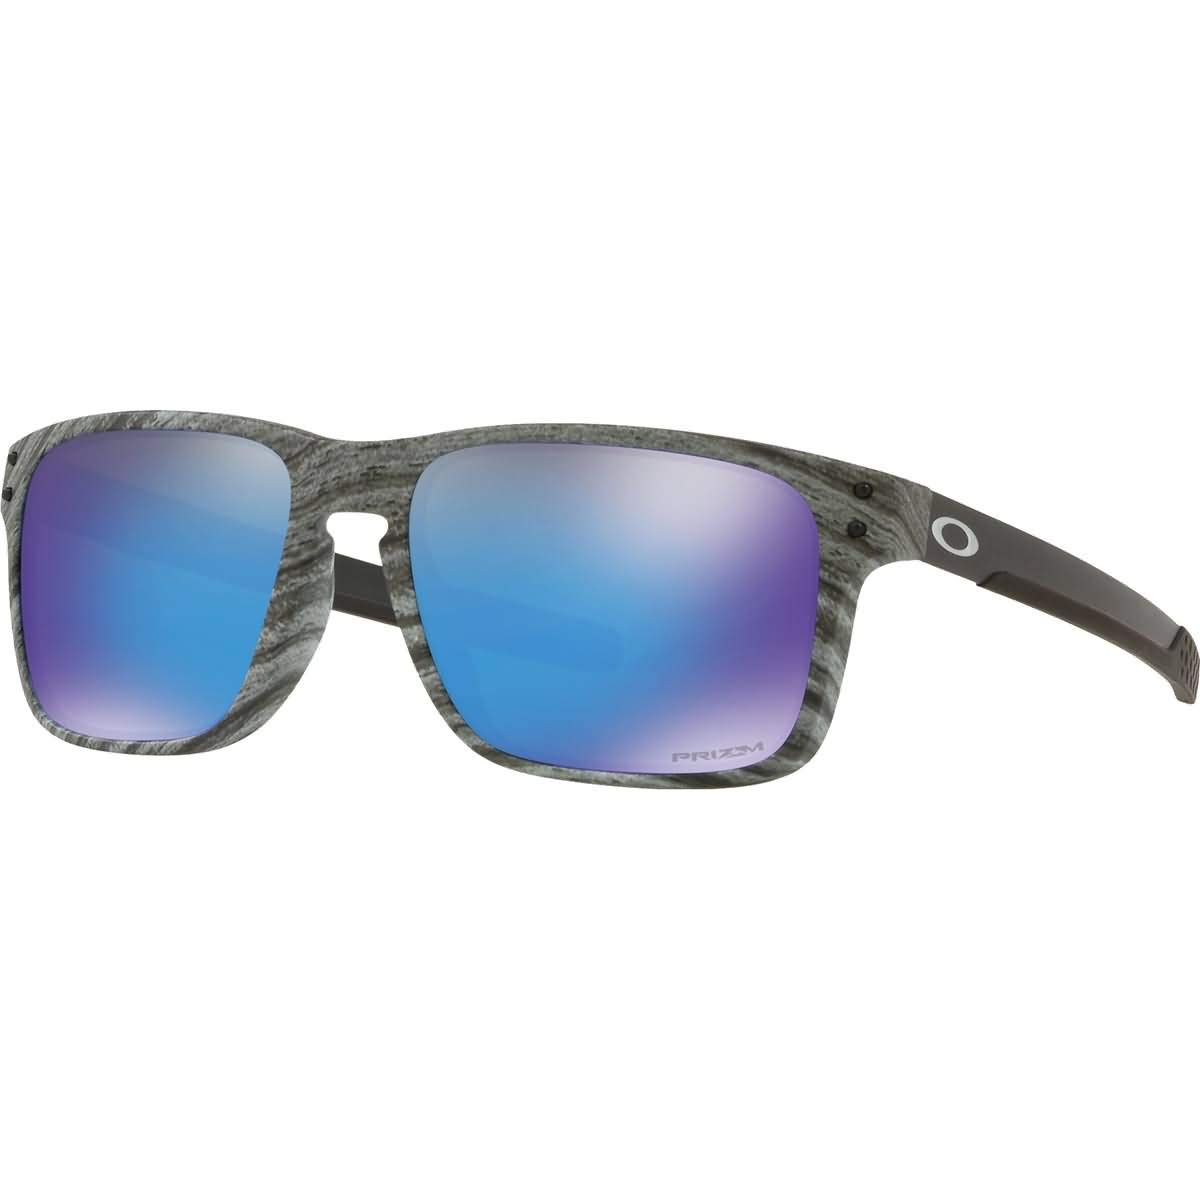 Oakley Men's OO9384 Holbrook Mix Rectangular Sunglasses, Frostwood/Prizm Sapphire, 57 mm by Oakley